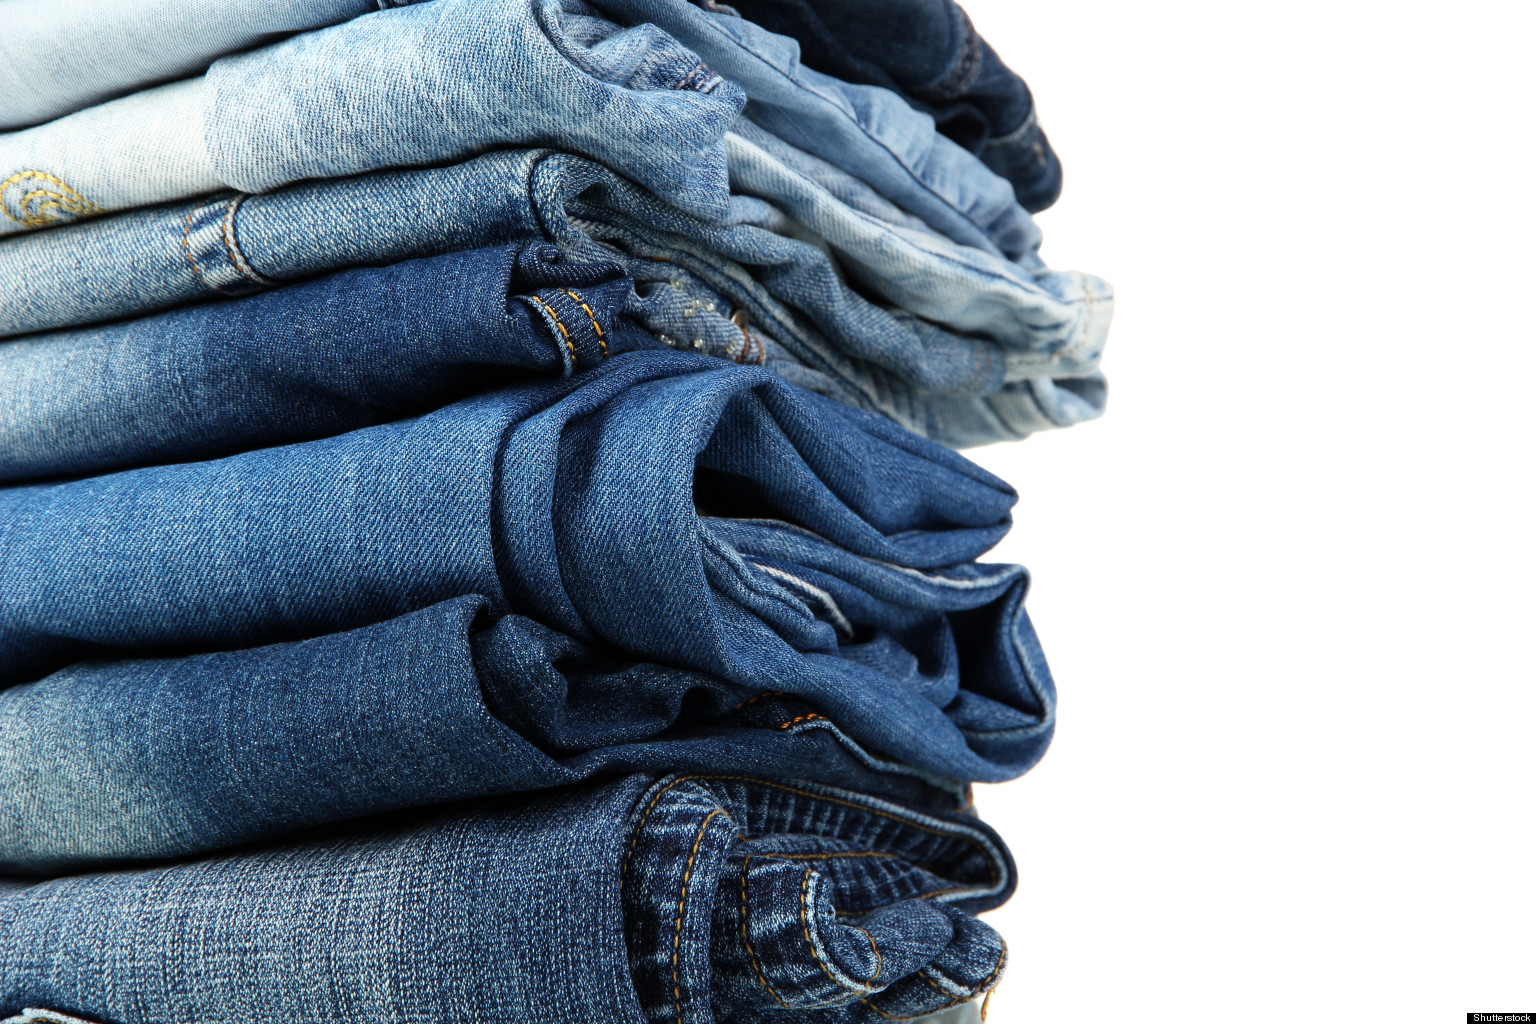 laundry, dry cleaning, laundry service in SIngapore